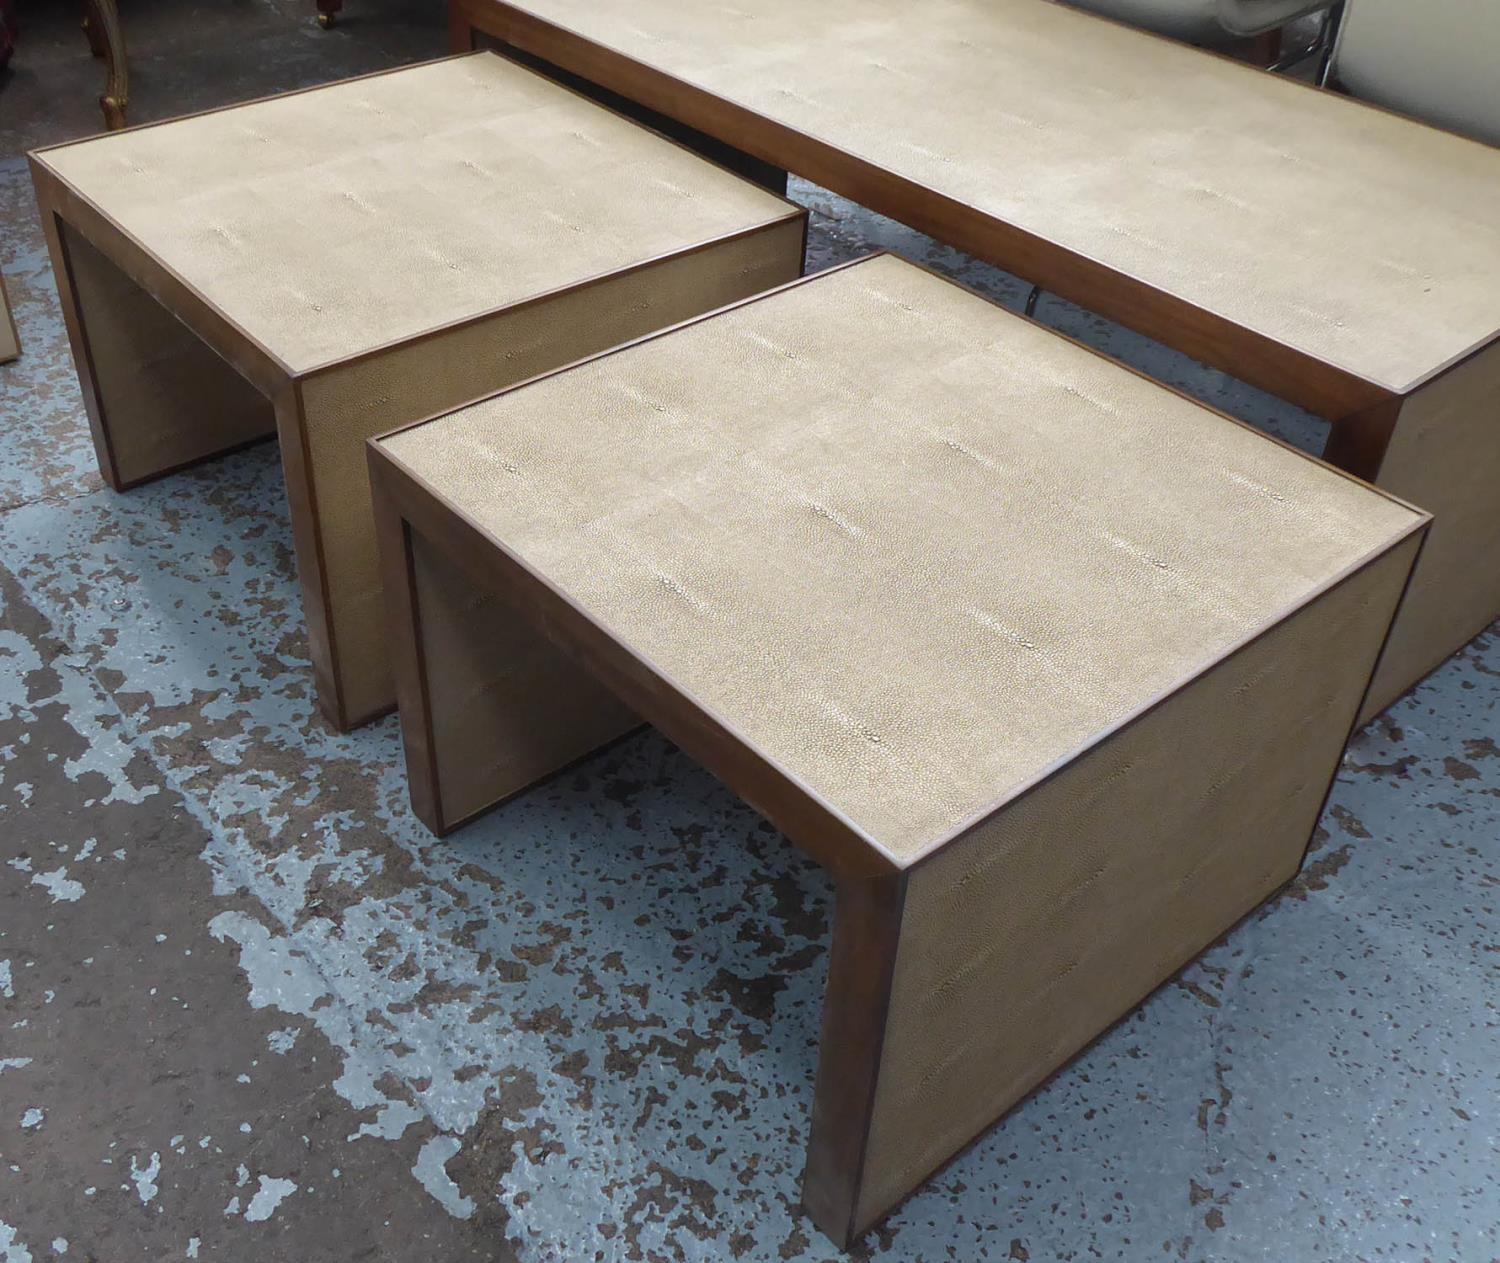 NEST OF TABLES, contemporary, faux shagreen finish, 137.5cm x 67cm x 49cm at largest.